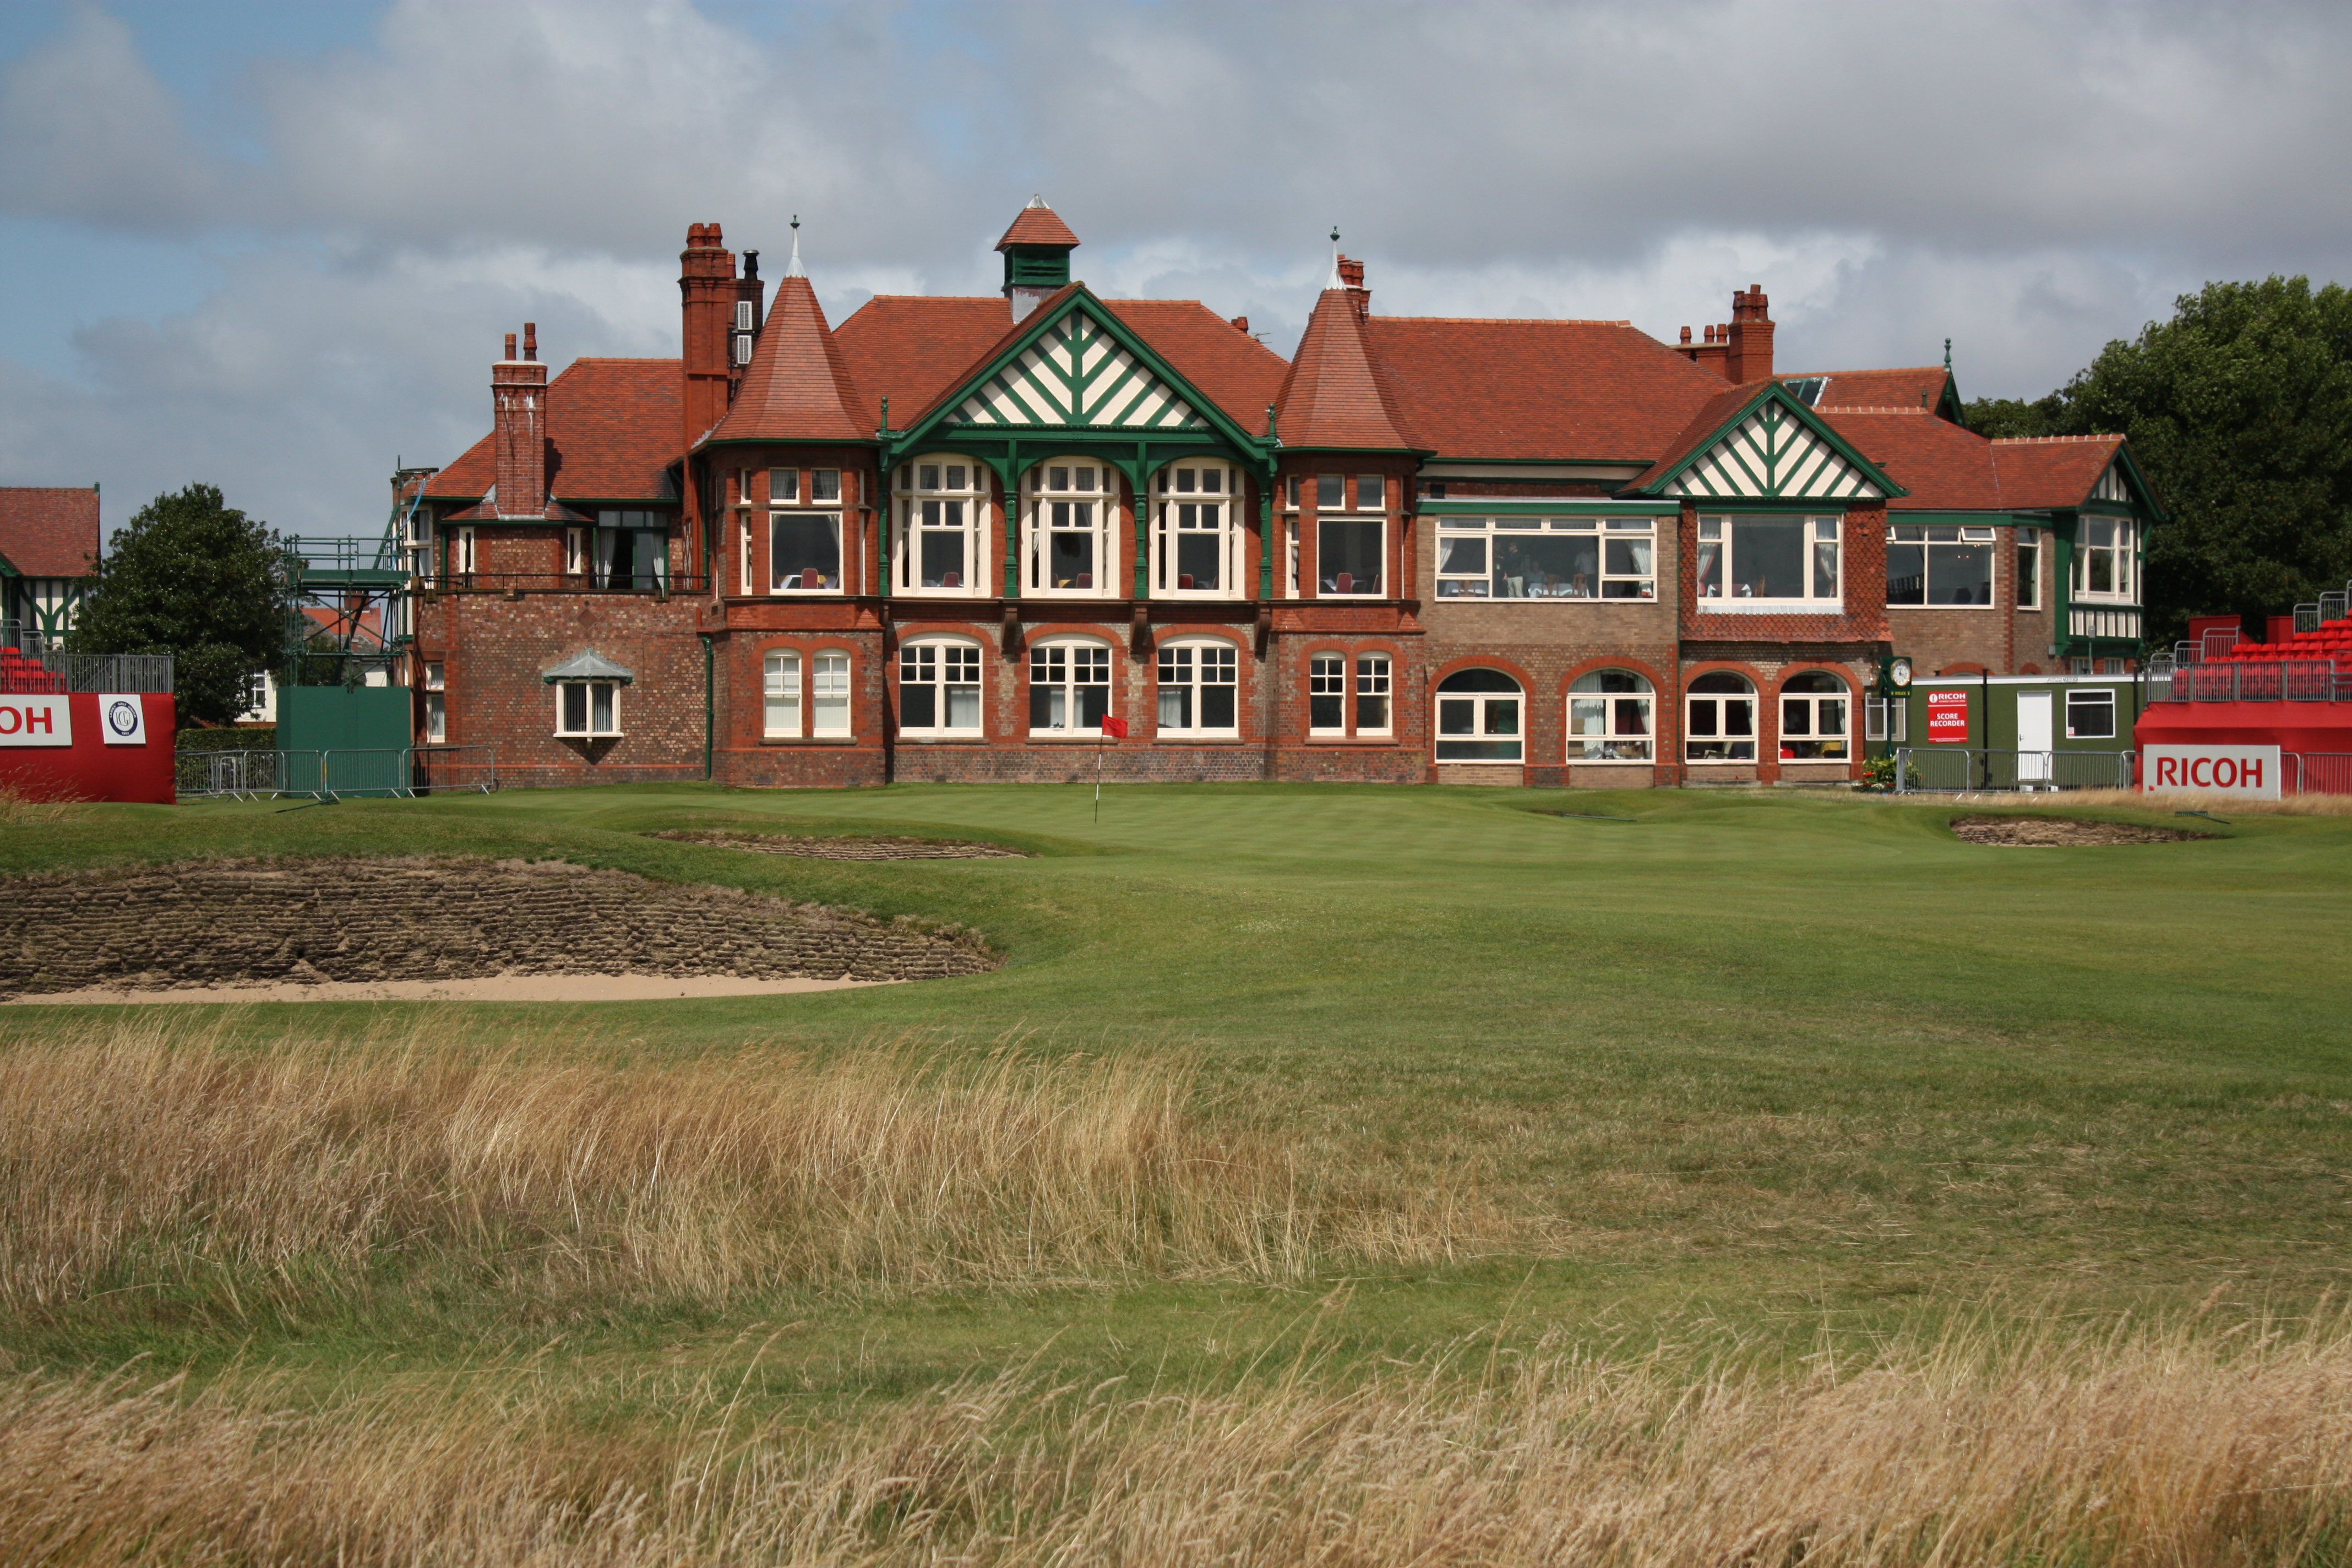 Lytham St Annes United Kingdom  City pictures : LYTHAM ST ANNES, UNITED KINGDOM JULY 27: 18th hole green and the ...